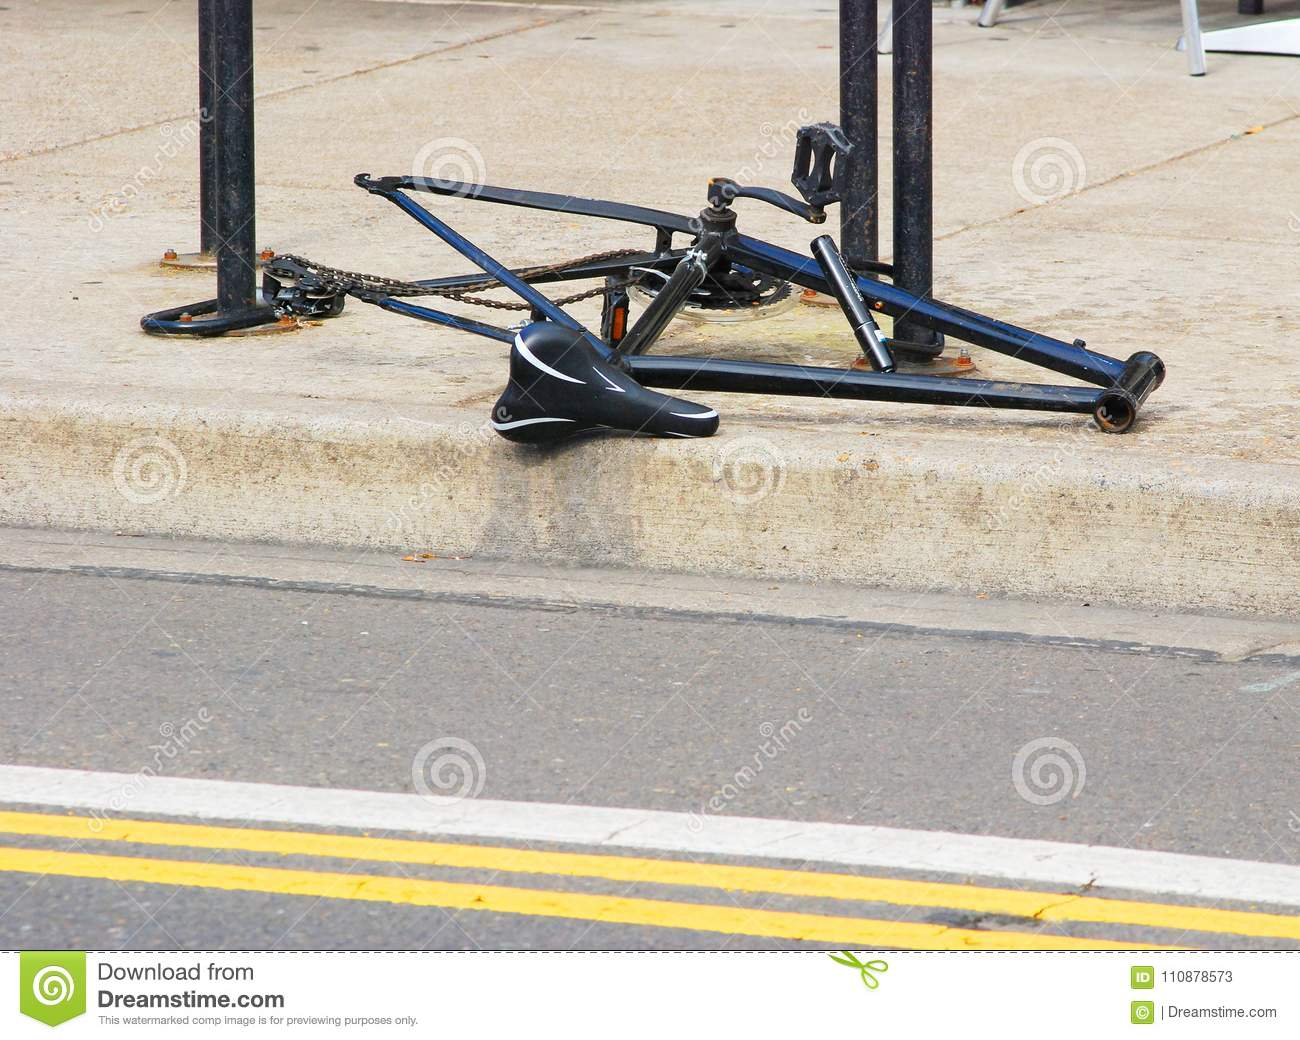 Bike With Missing Wheels And Handlebars Stock Image Image Of City